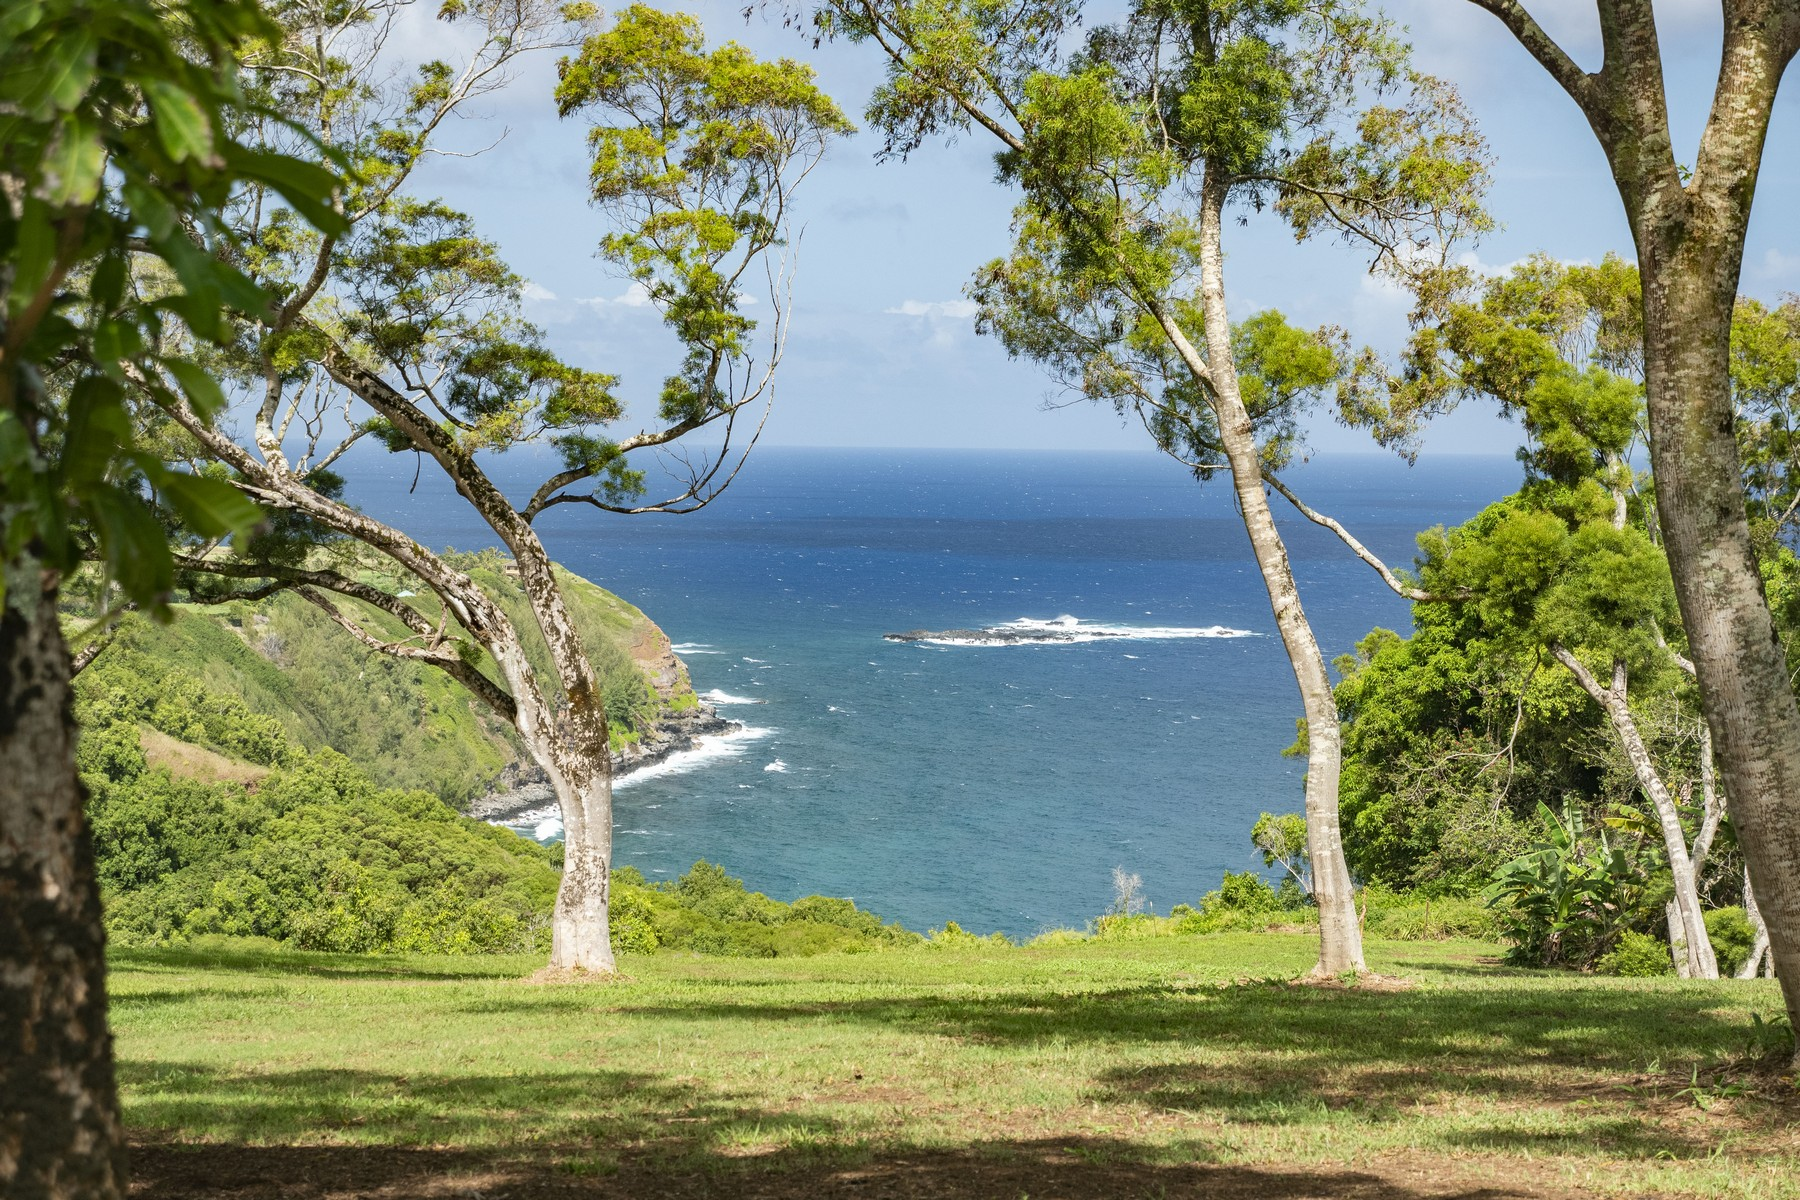 Land for Sale at Build your Dream Home in the Fairytail Location 3 Kamau Rd Haiku, Hawaii 96708 United States